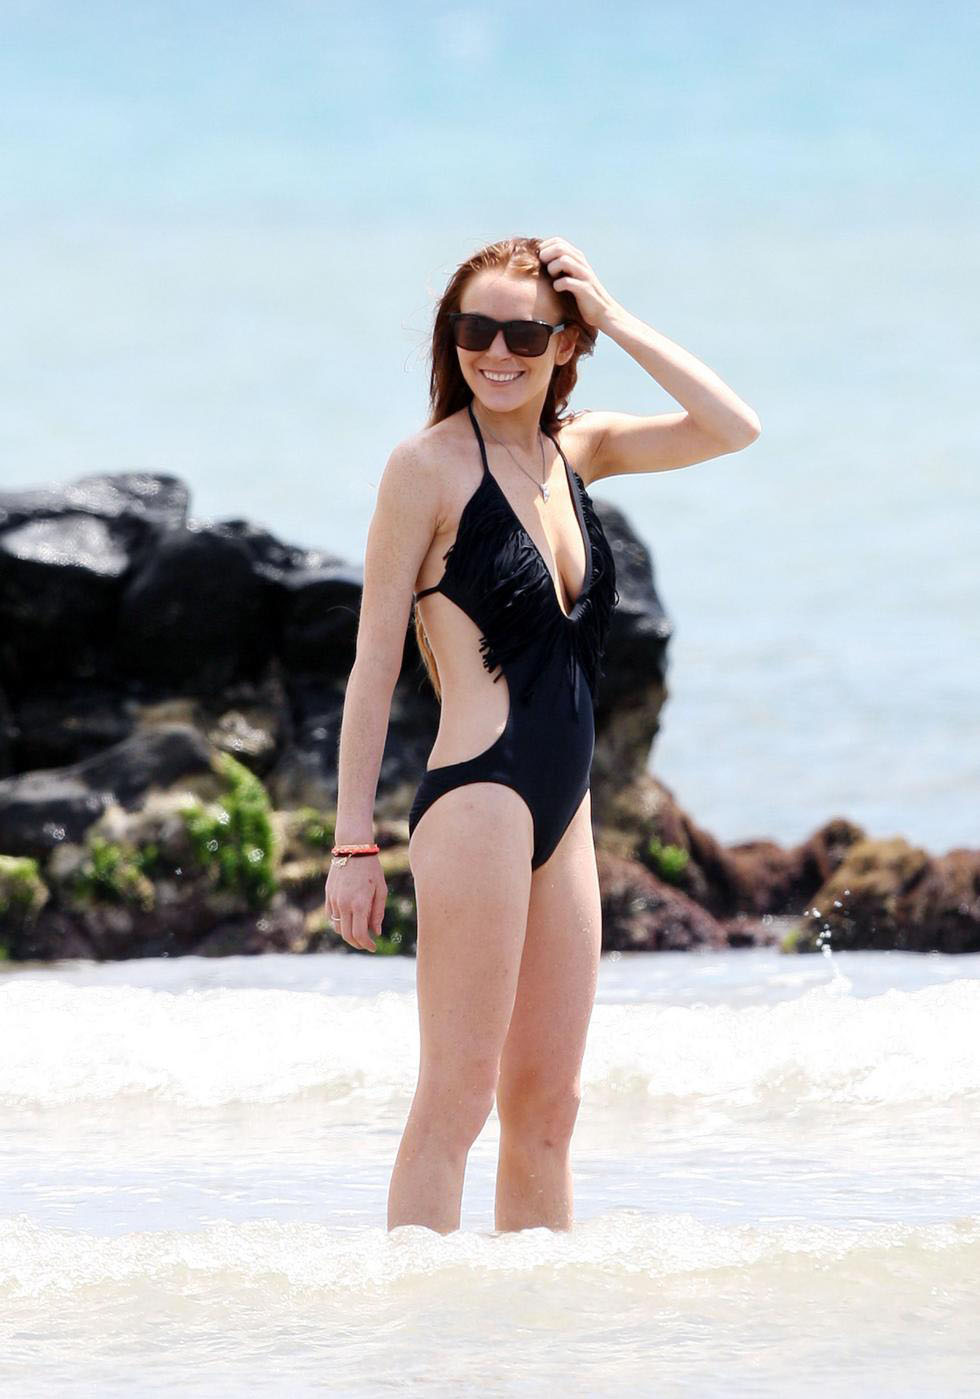 ... model. Now you are looking Lindsay Lohan pictures in black bikini